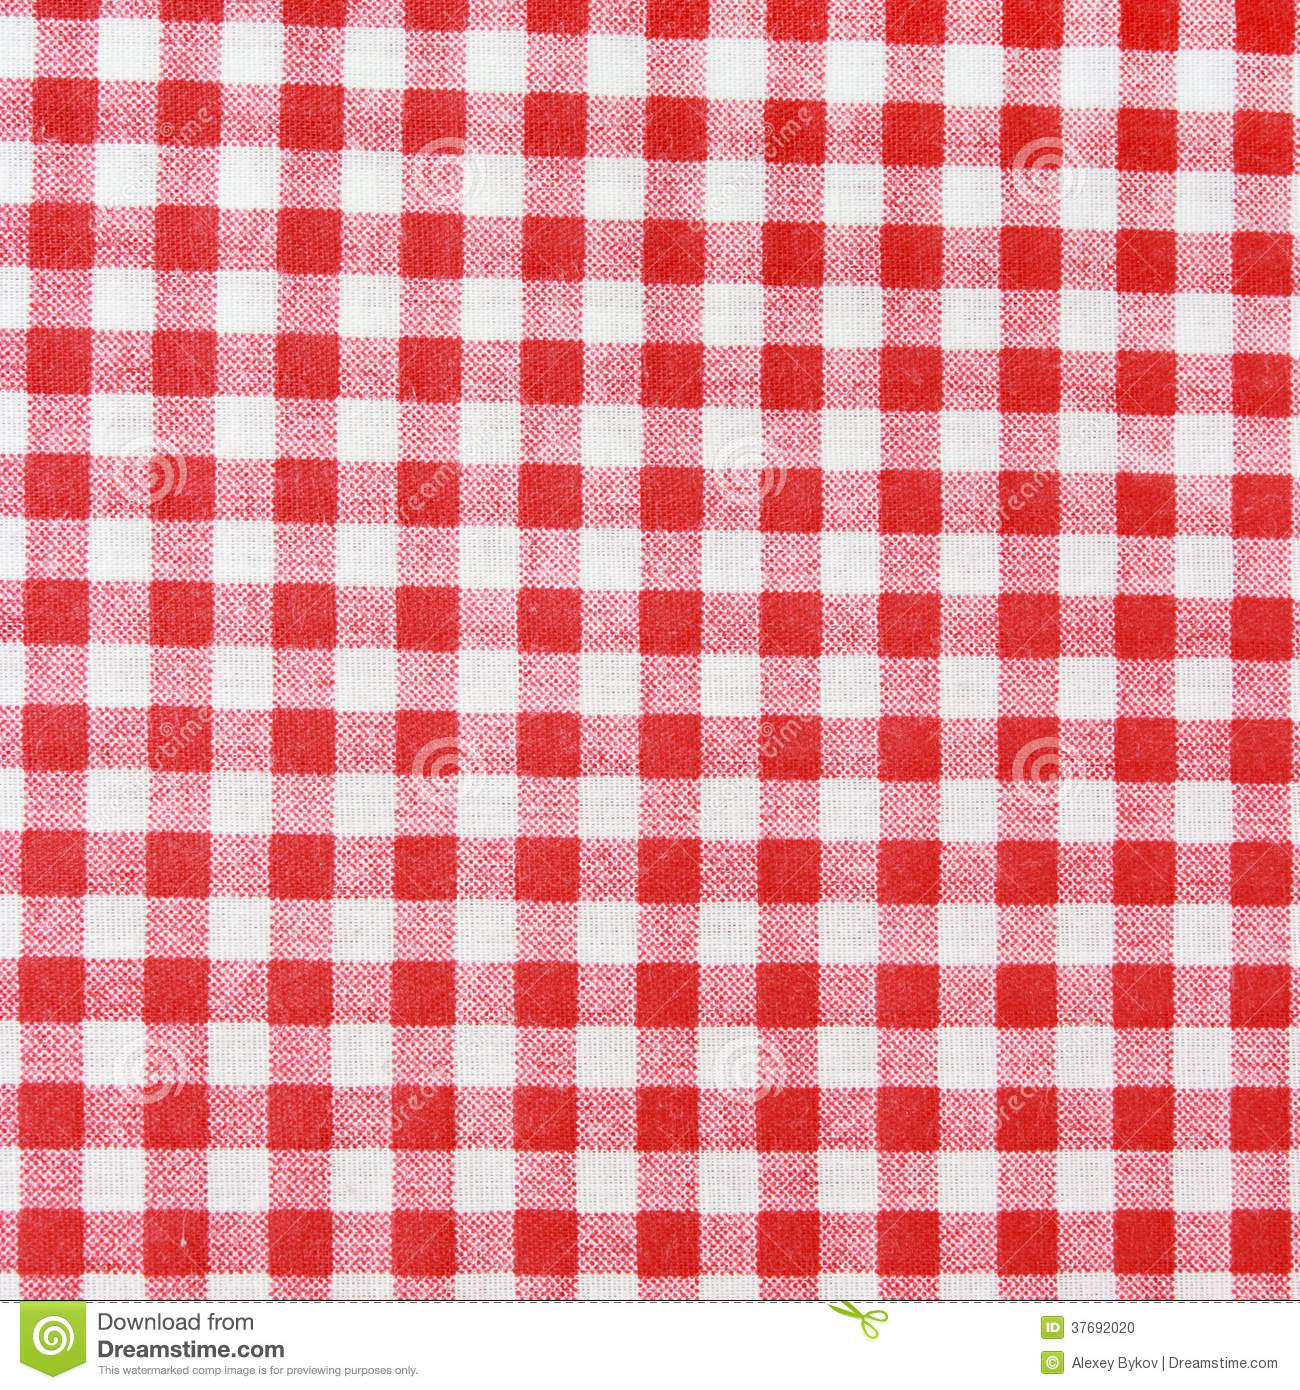 82ee90bacb9 Red linen tablecloth. Texture of a red and white checkered picnic blanket.